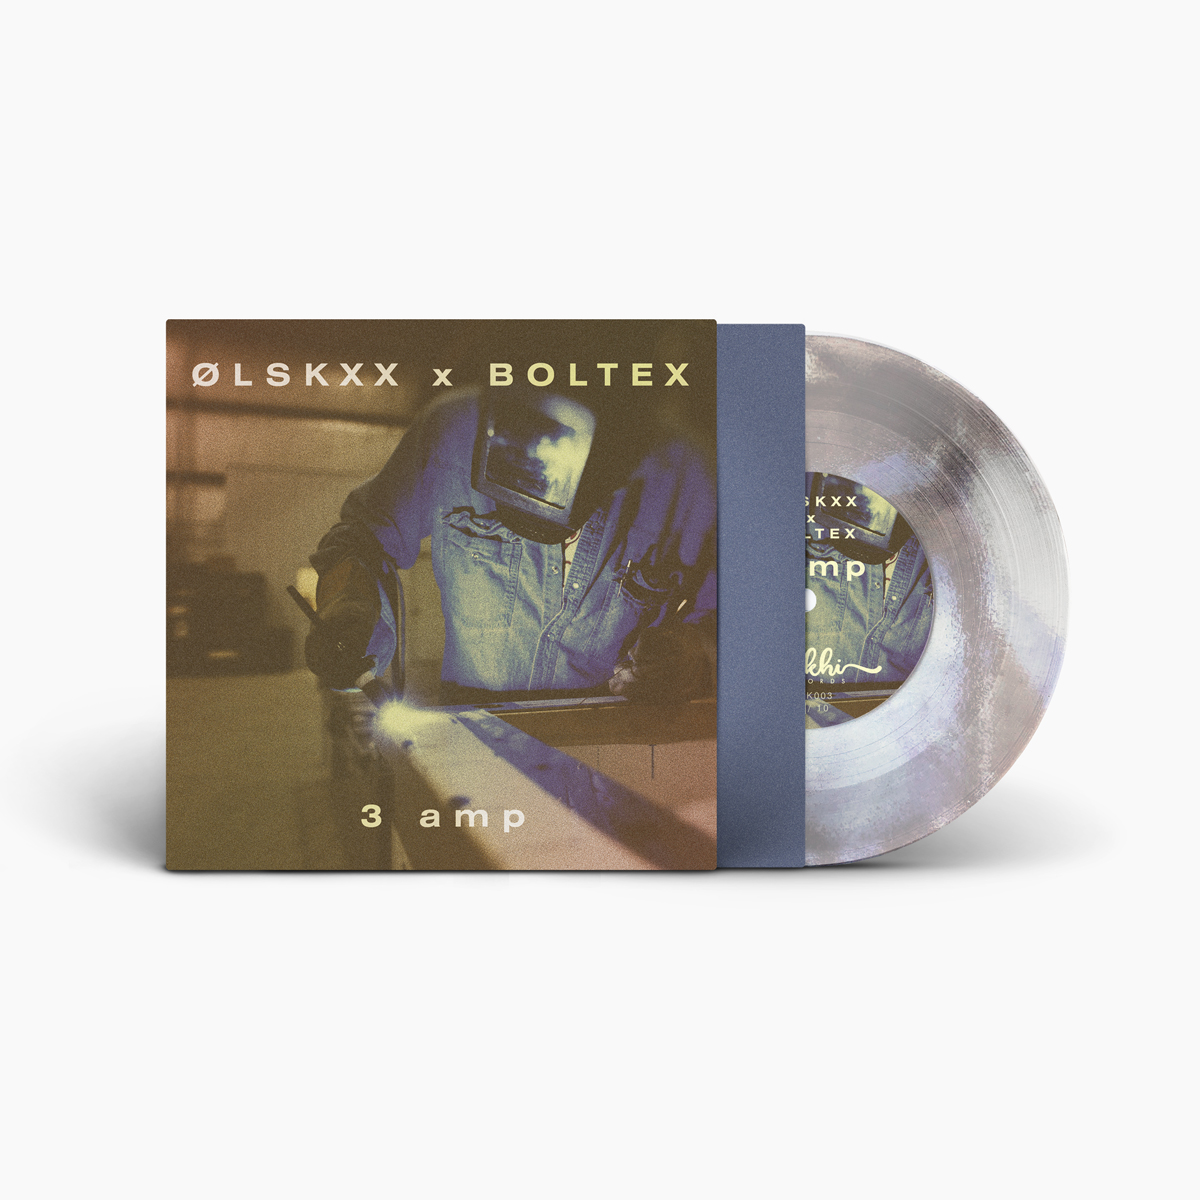 LIMITED EDITION 7in Picture Disc (10 only) - ØLSKXX & Boltex - 3 Amp